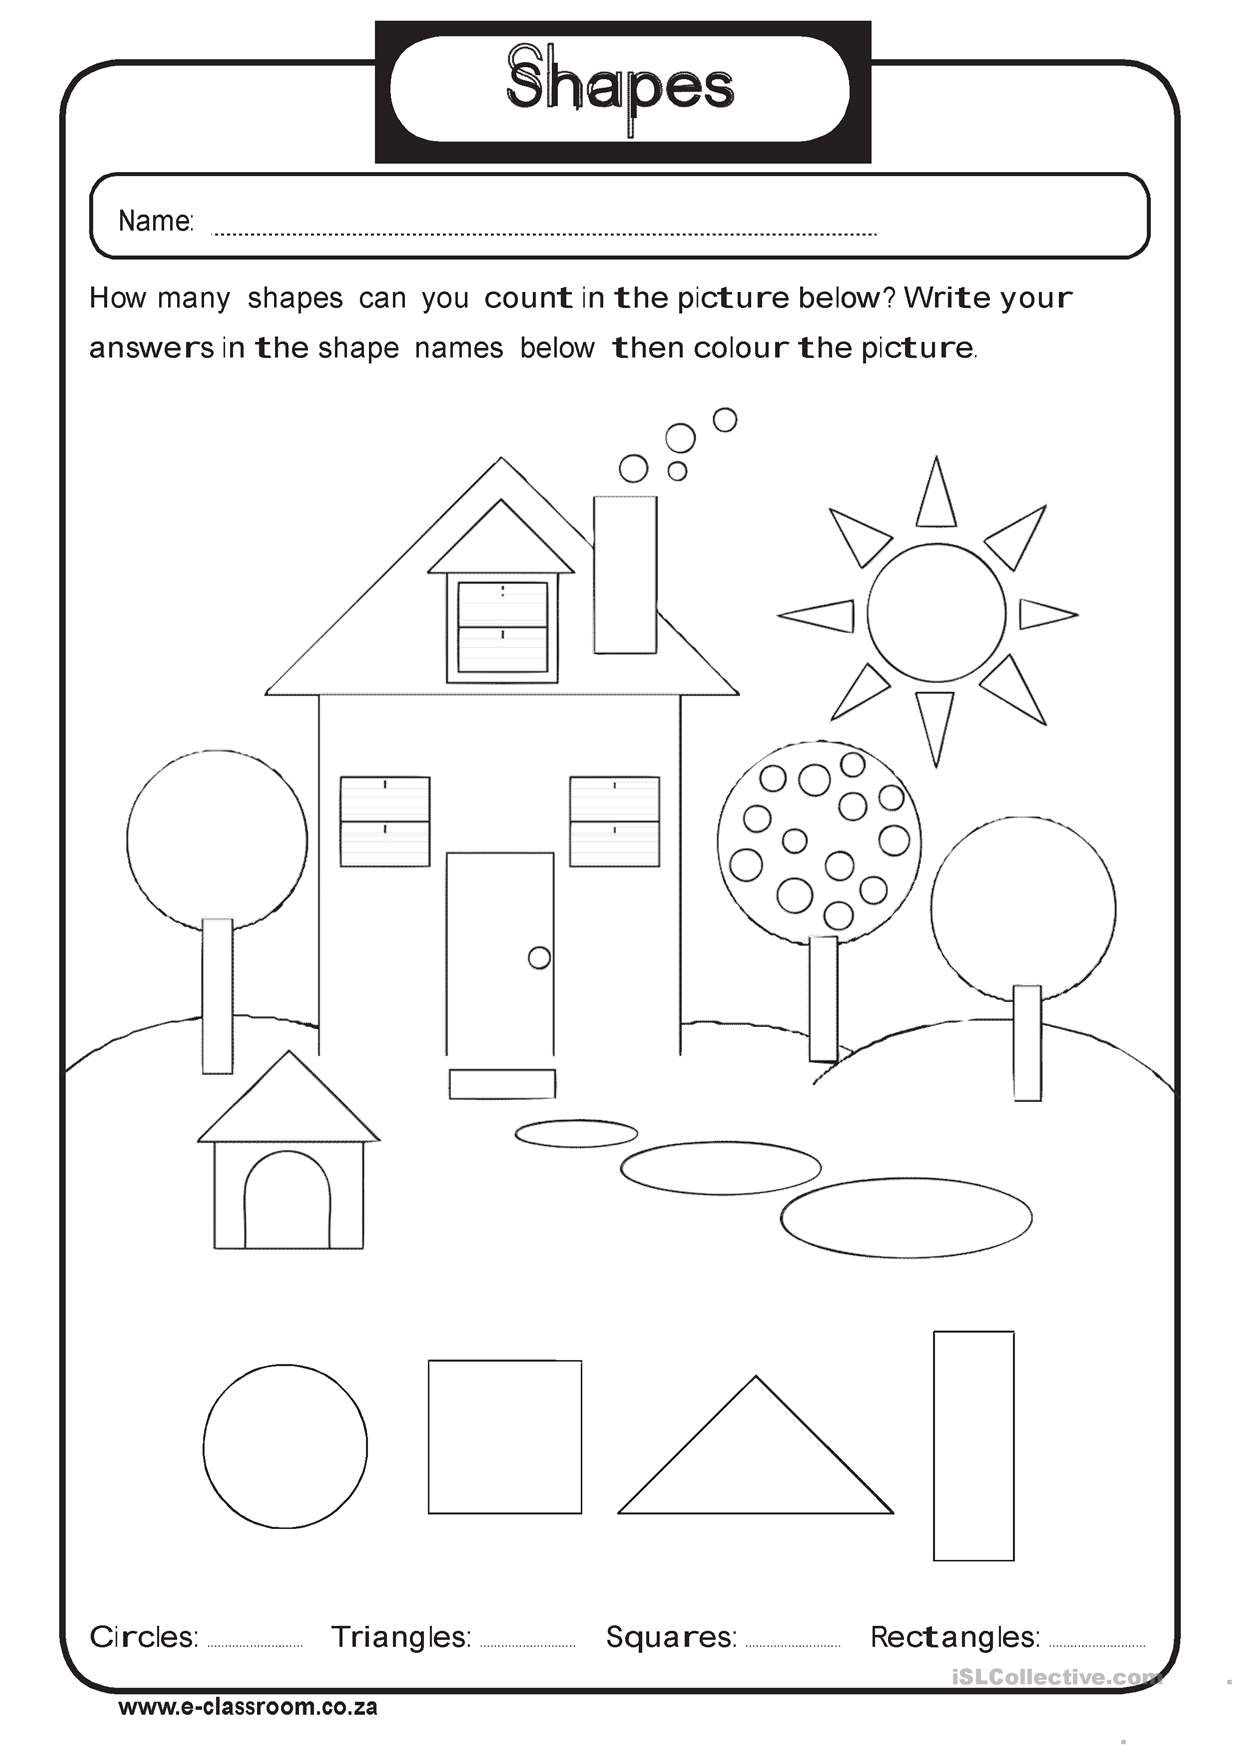 Oneclick print document English worksheets for kids